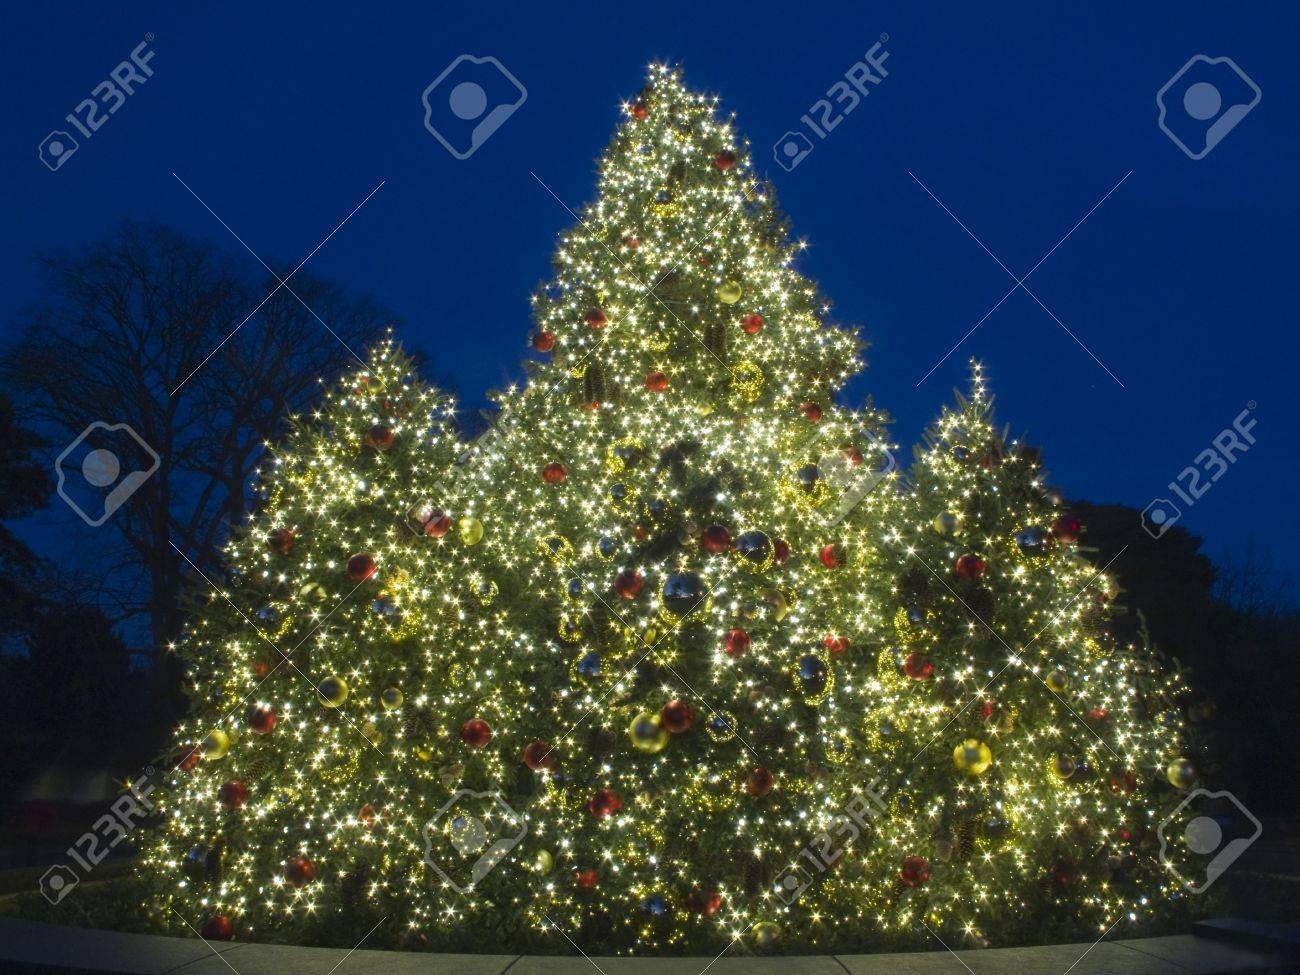 Outdoor Christmas Tree at Dusk, lit with bright colorful lights Stock Photo - 12628827